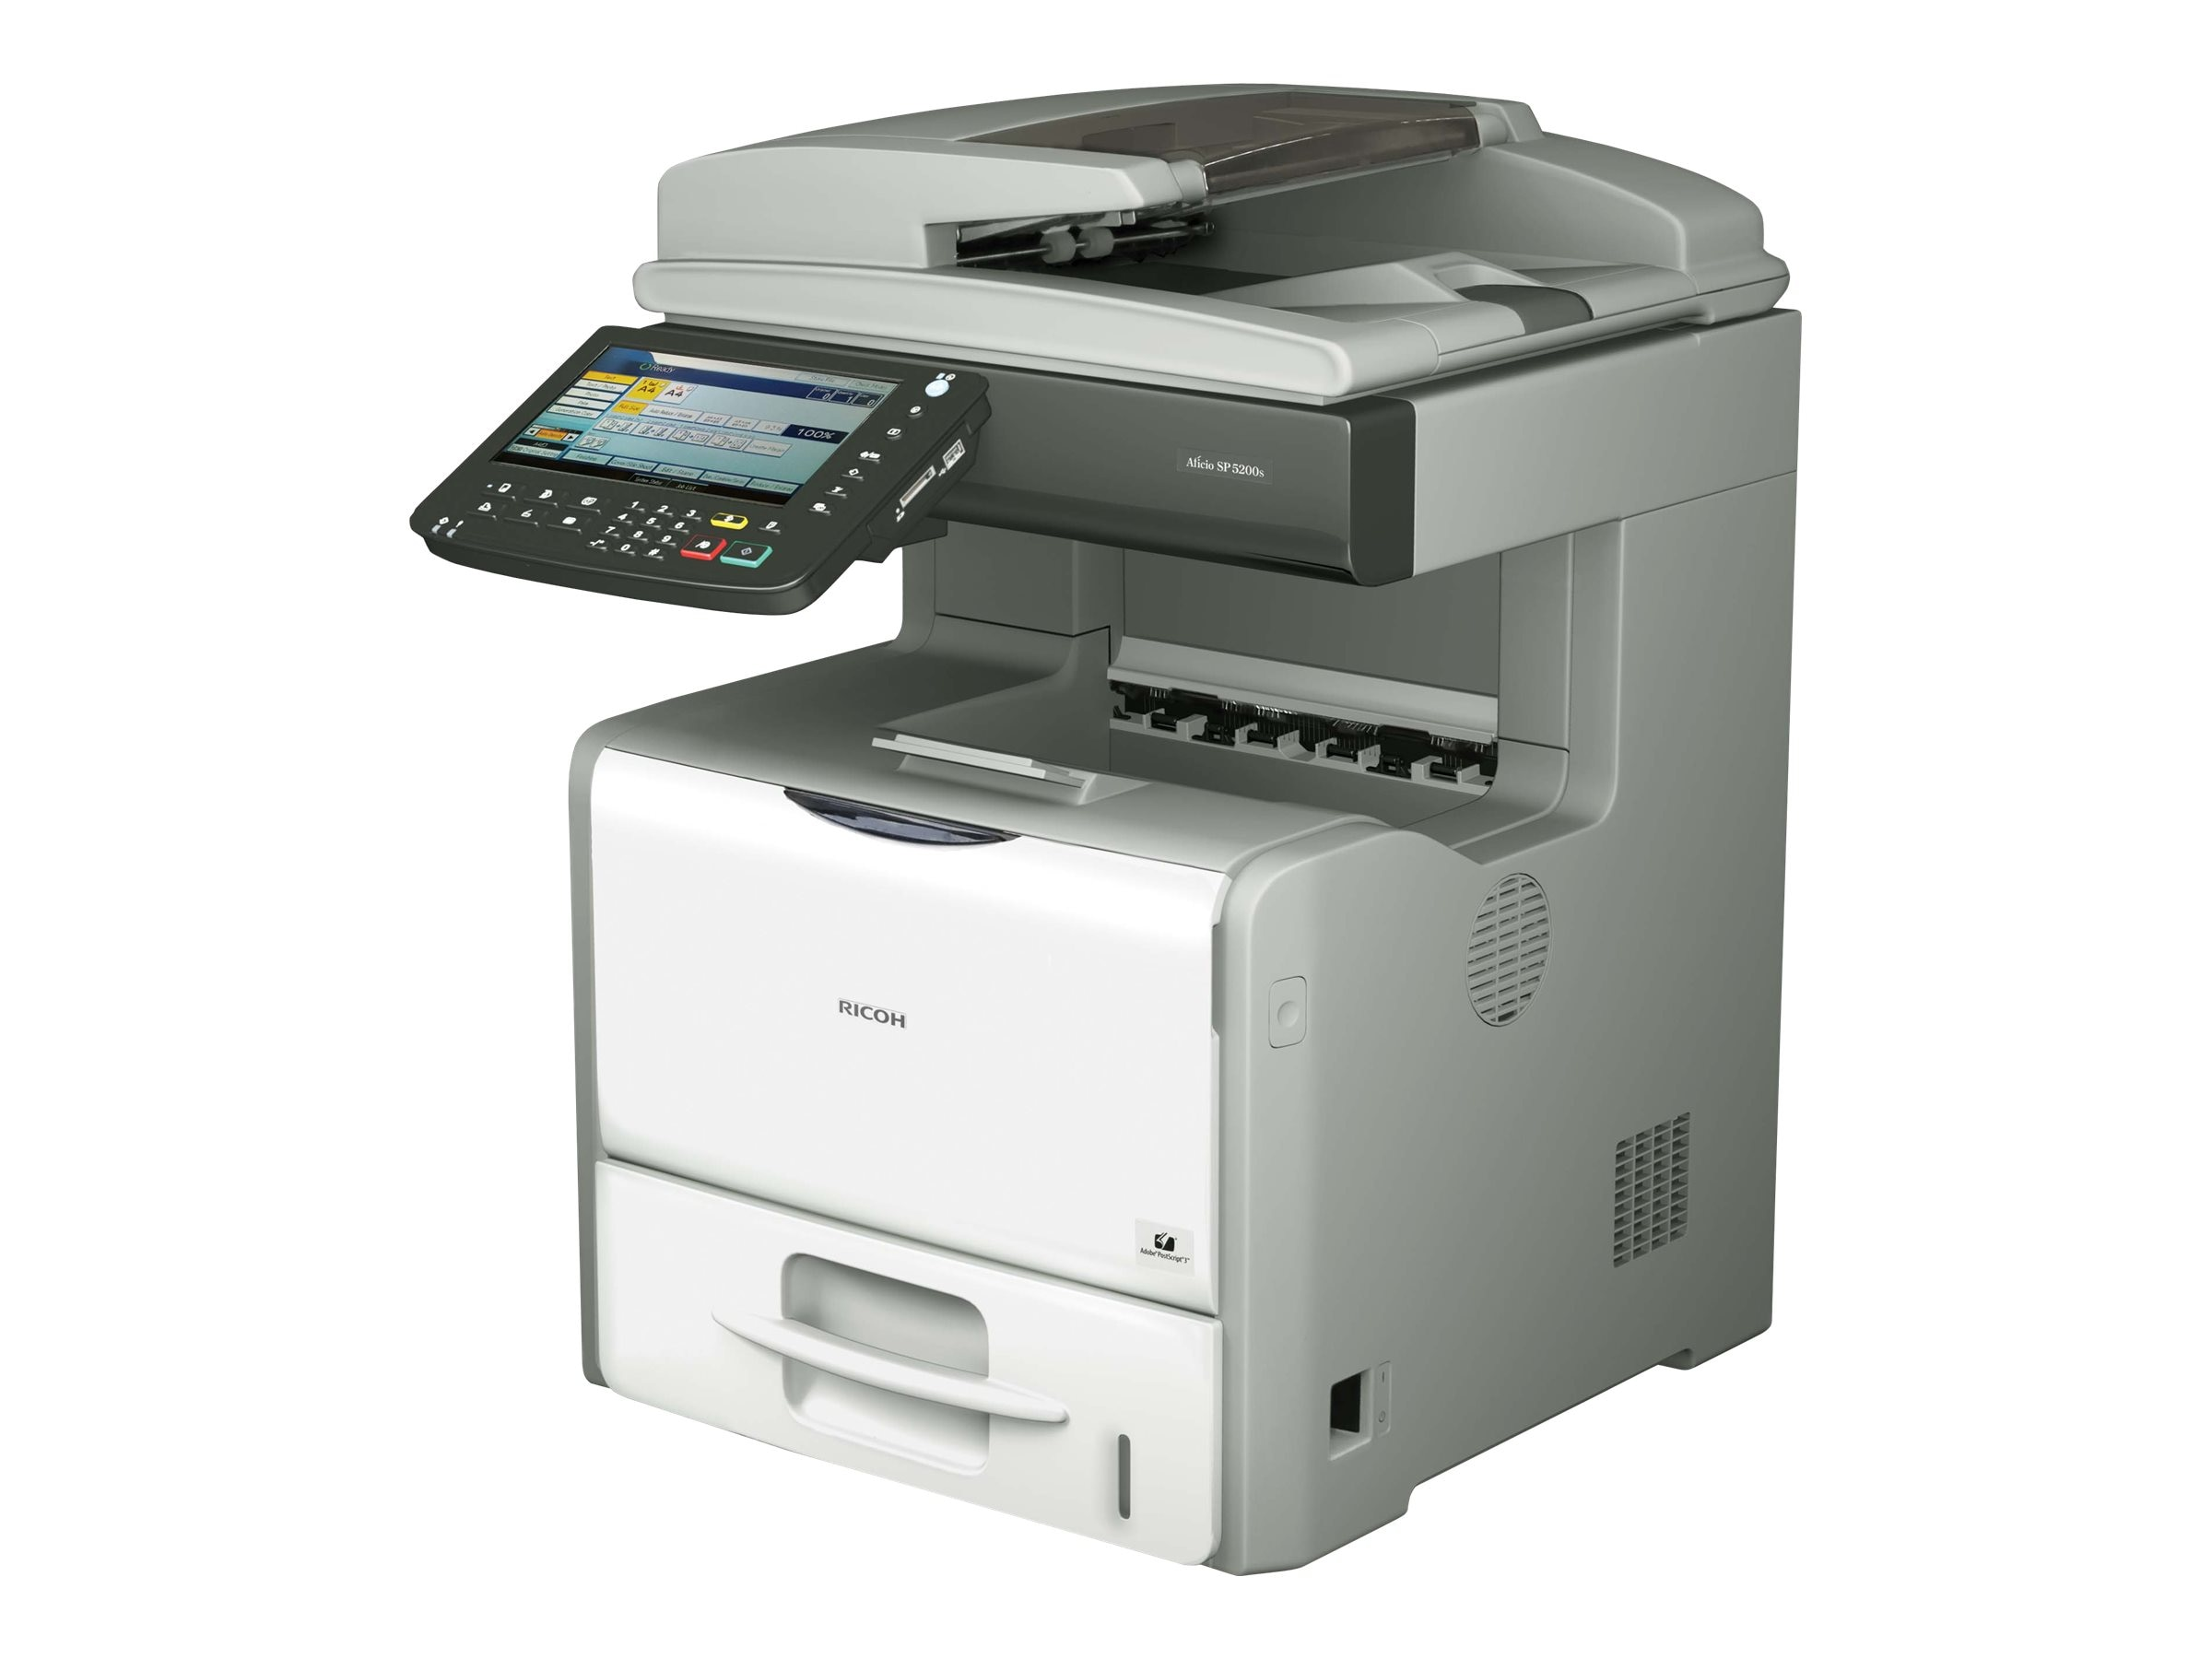 Ricoh Aficio SP 5200SG Printer, 407570, 16586341, Printers - Laser & LED (color)